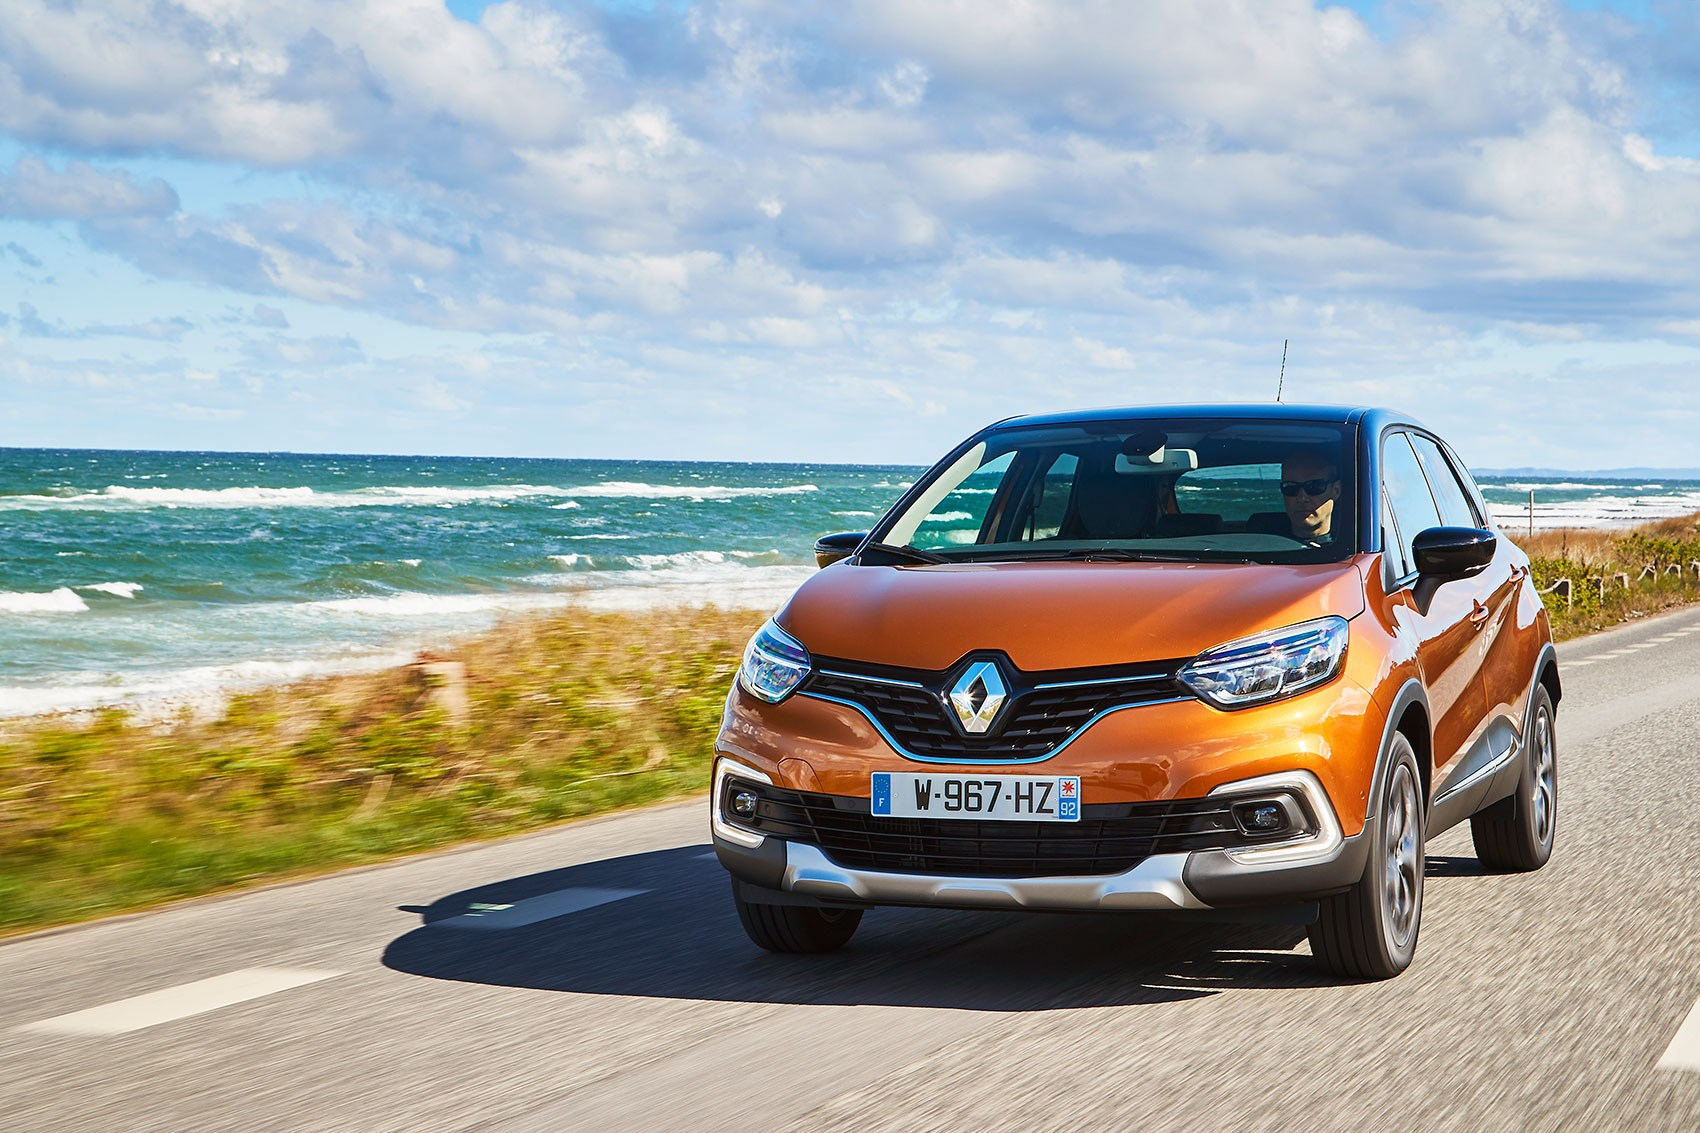 renault captur signature s nav tce 120 2017 review by car magazine. Black Bedroom Furniture Sets. Home Design Ideas